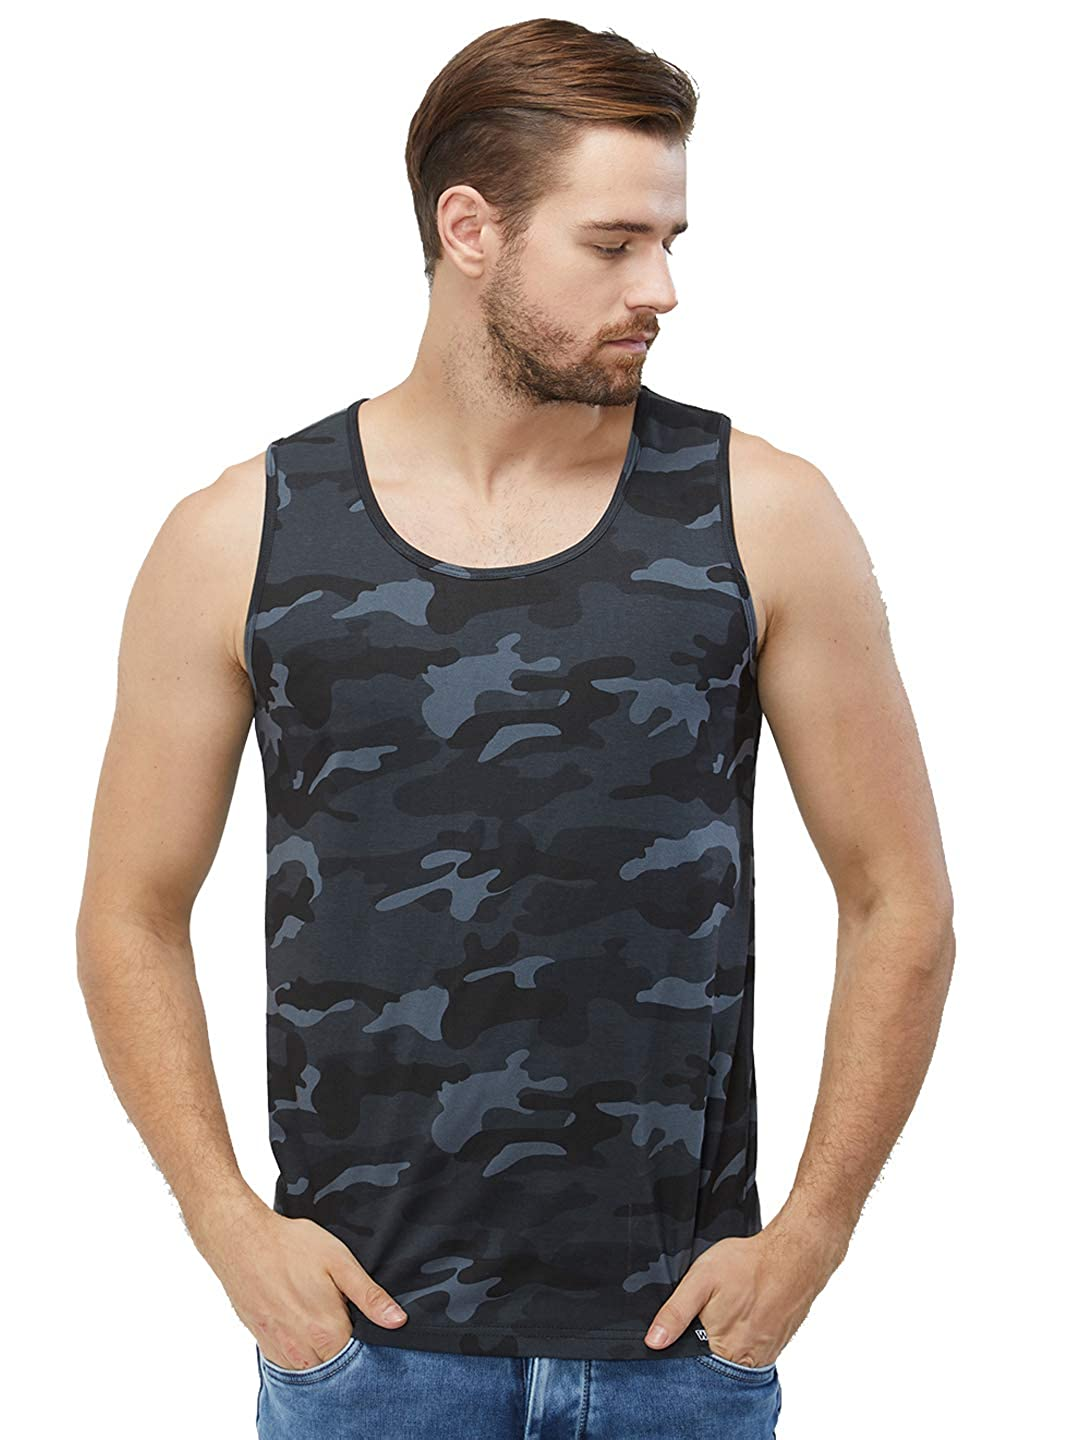 c59ed5d49df1e WYO Men s Camouflage Sleeveless Casual Cotton Sports Gym Wear Vest (Plain  Vest - Green Camo)  Amazon.in  Clothing   Accessories